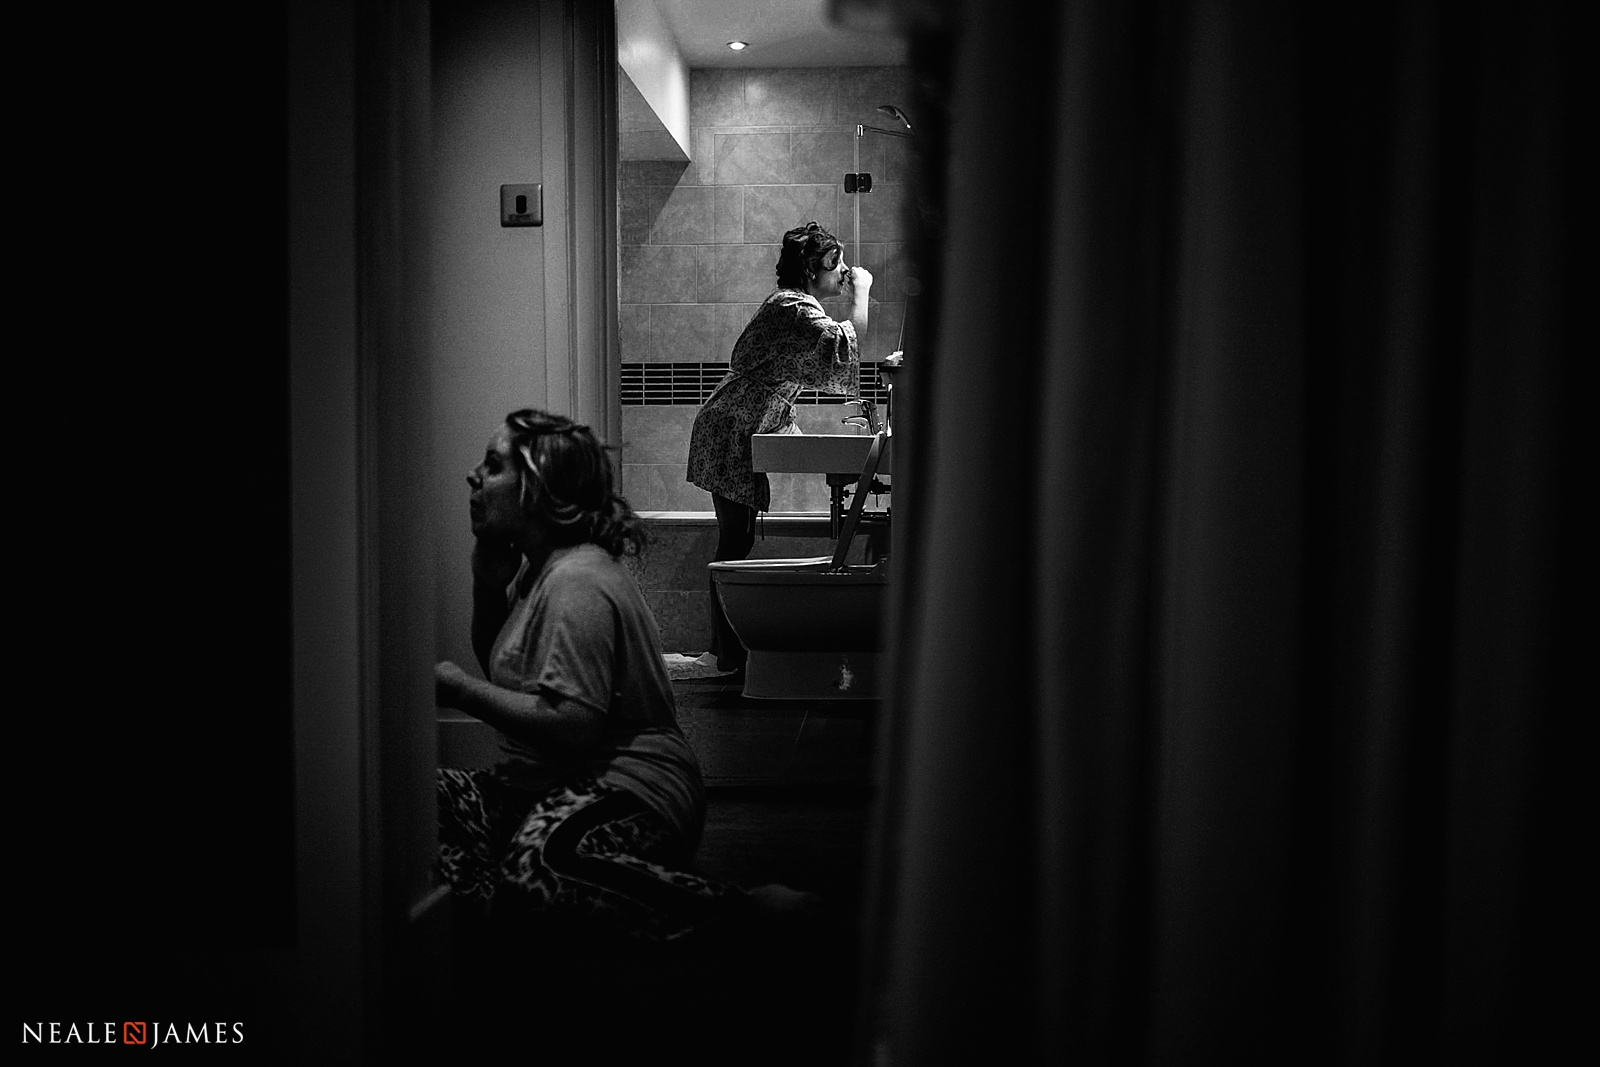 A black and white photograph of two bridesmaids applying make up in a mirror